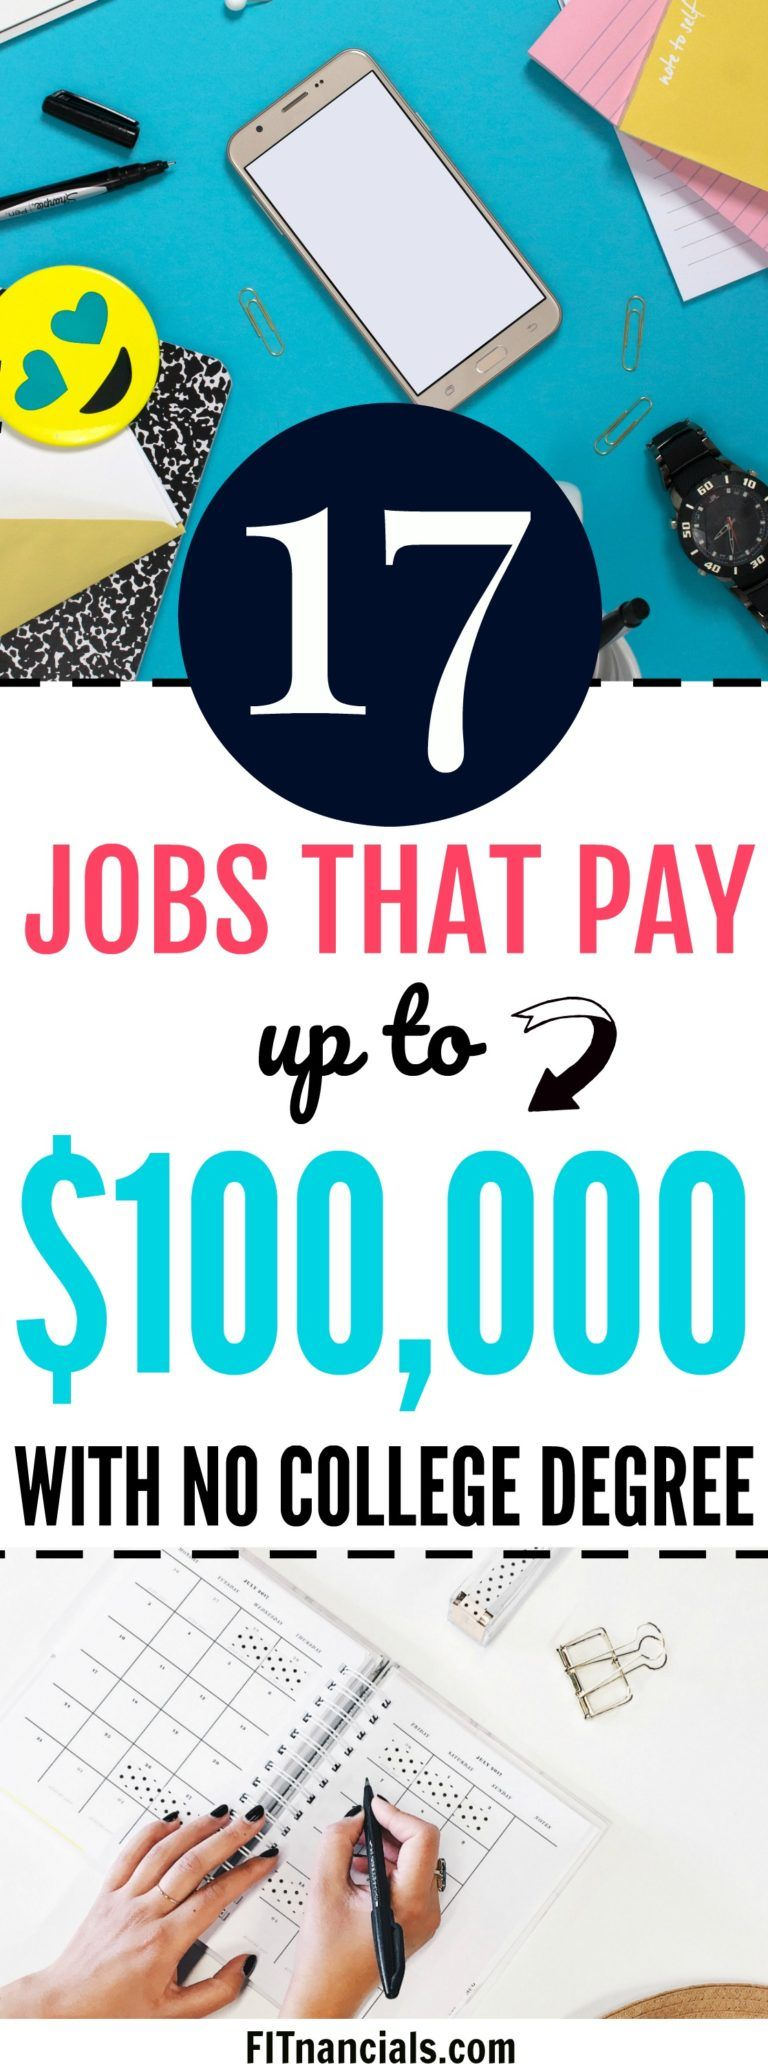 12 Jobs That Pay Up To 100,000+ A Year With No College